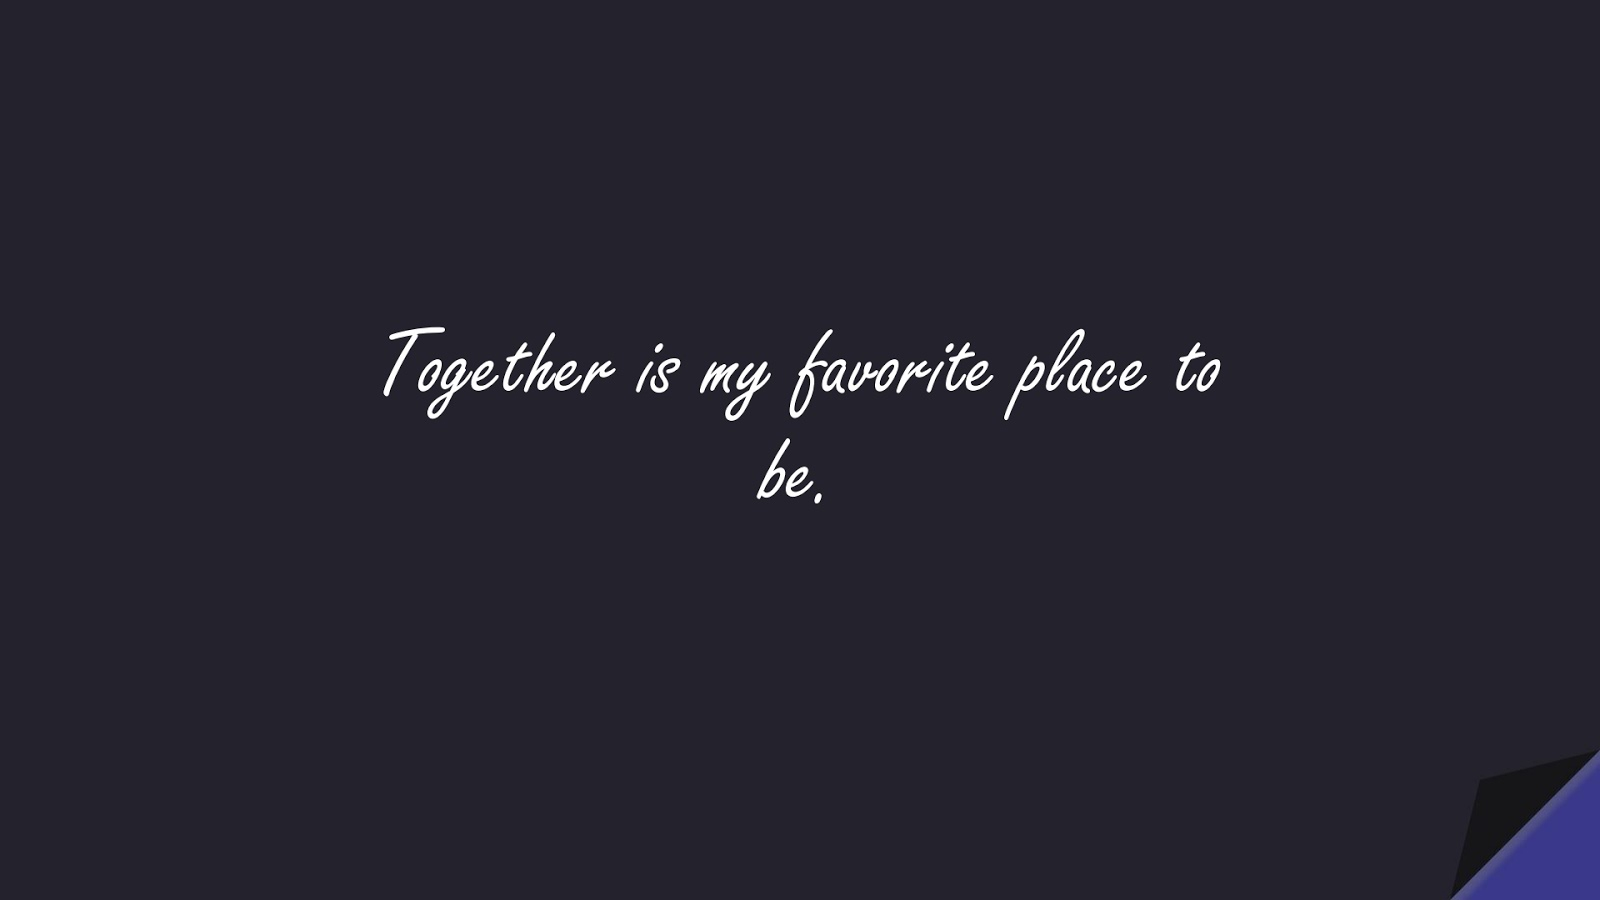 Together is my favorite place to be.FALSE